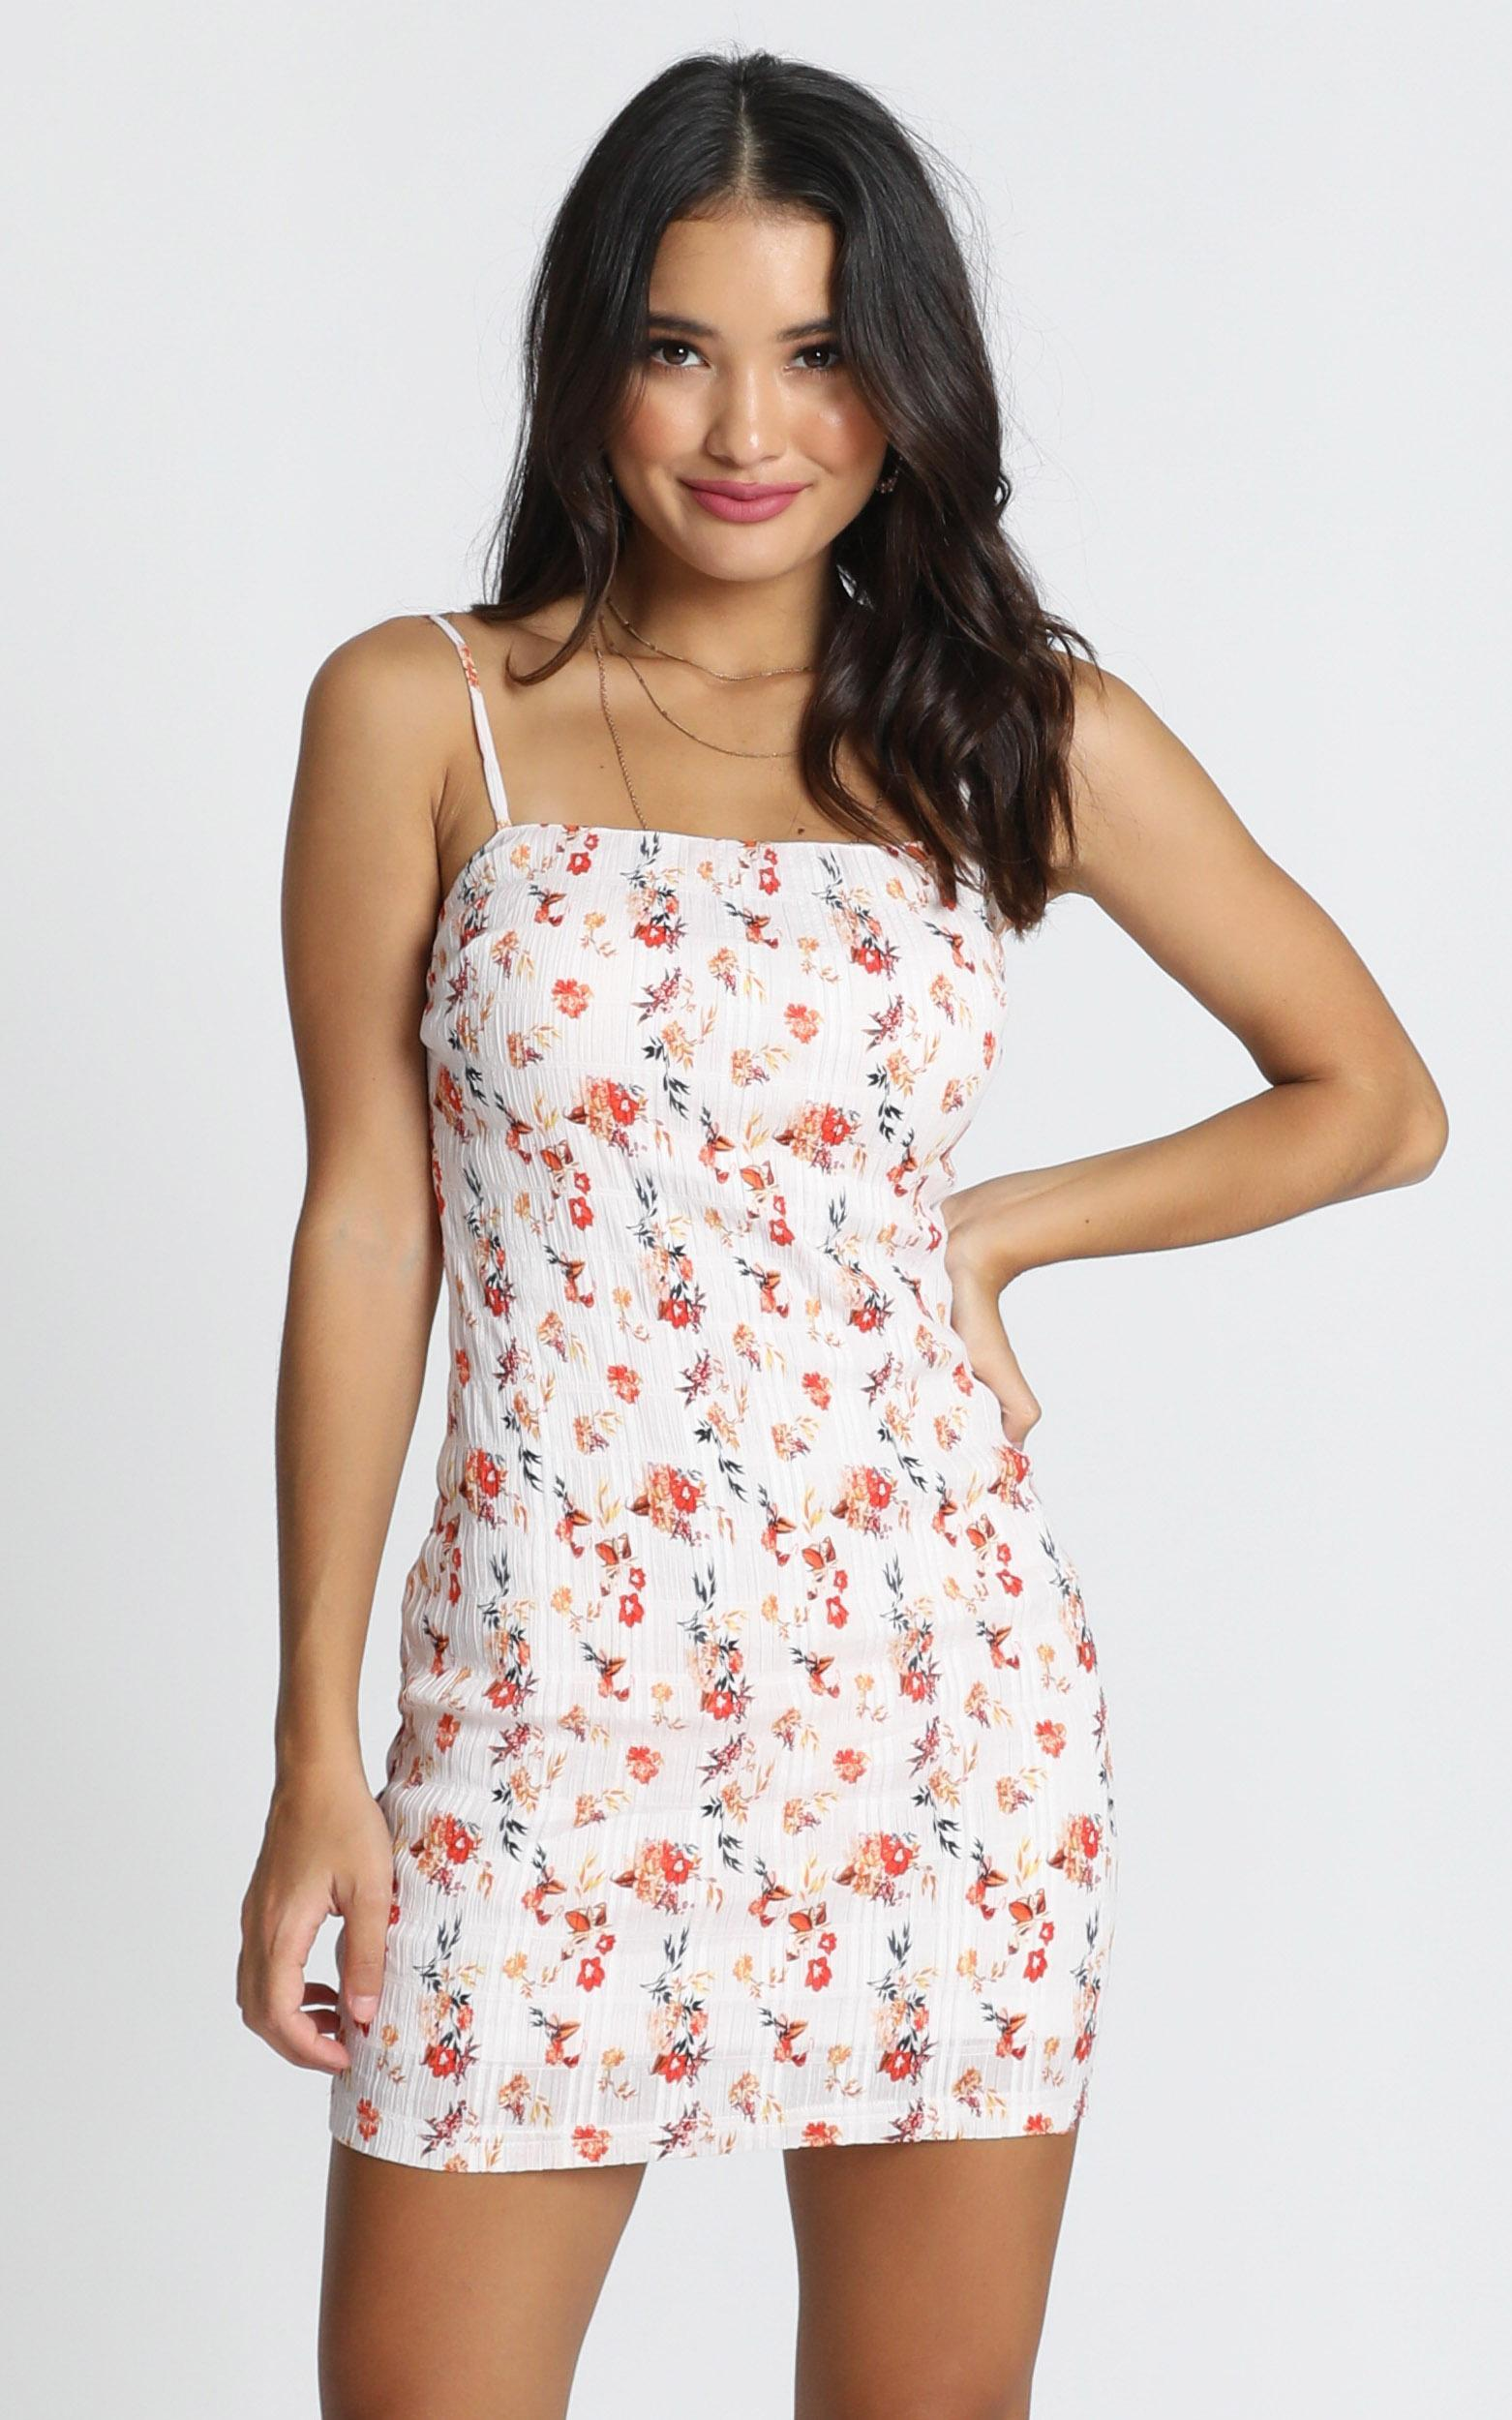 Mingling Away Dress in white floral - 12 (L), White, hi-res image number null